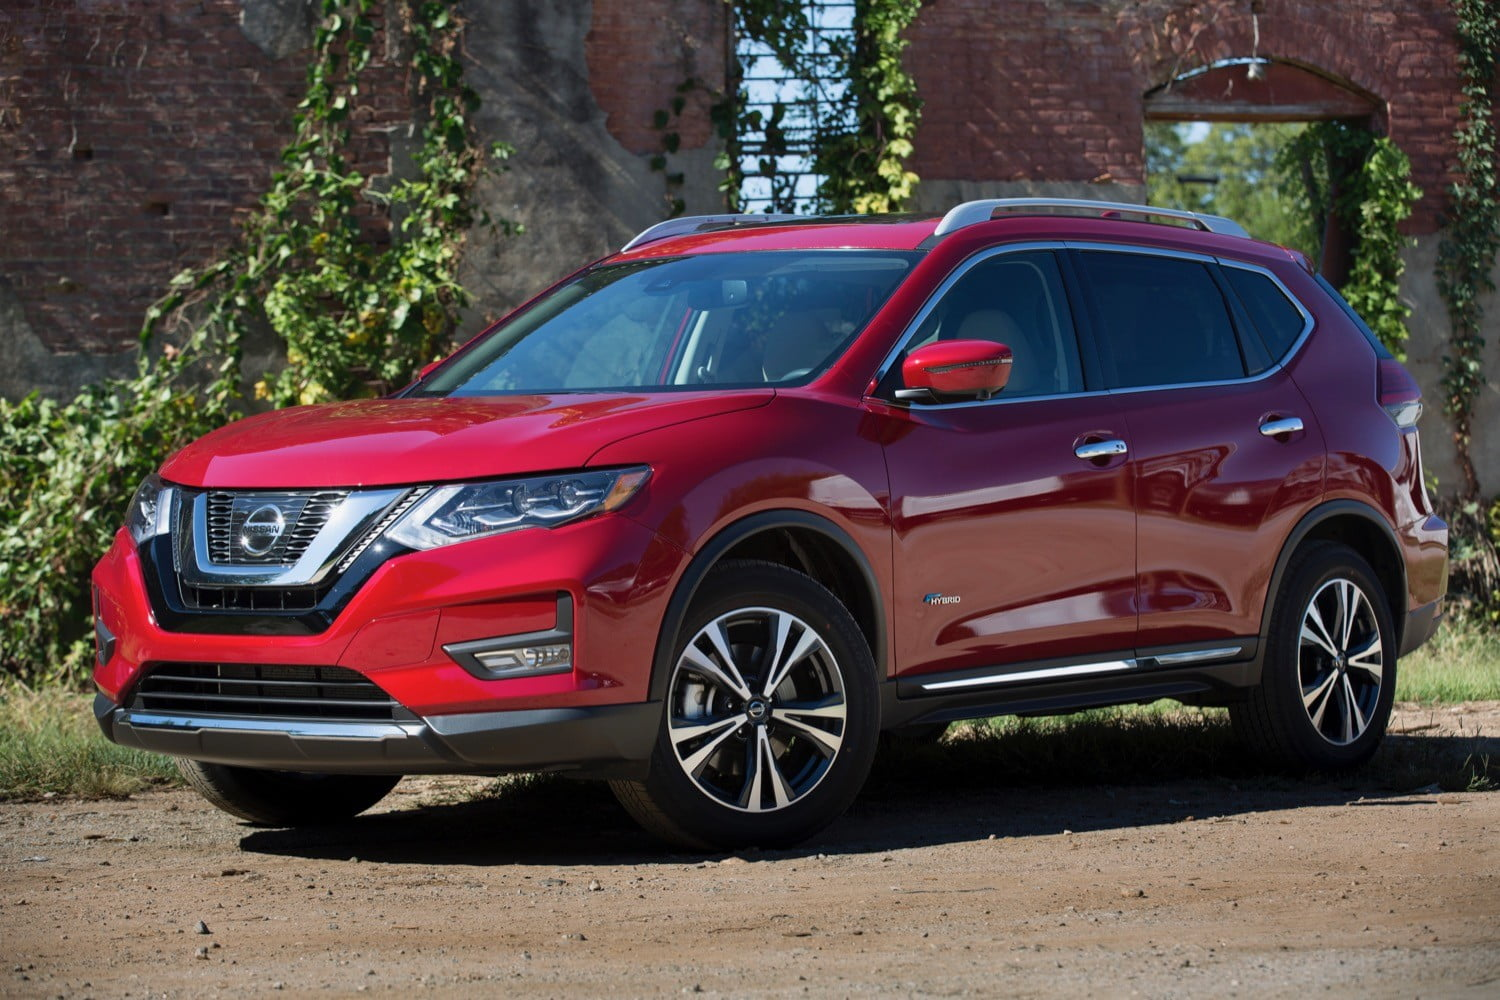 2019 Nissan Rogue: News, Upgrades, Specs, Price >> Nissan Rogue Hybrid Discontinued For 2020 Model Year